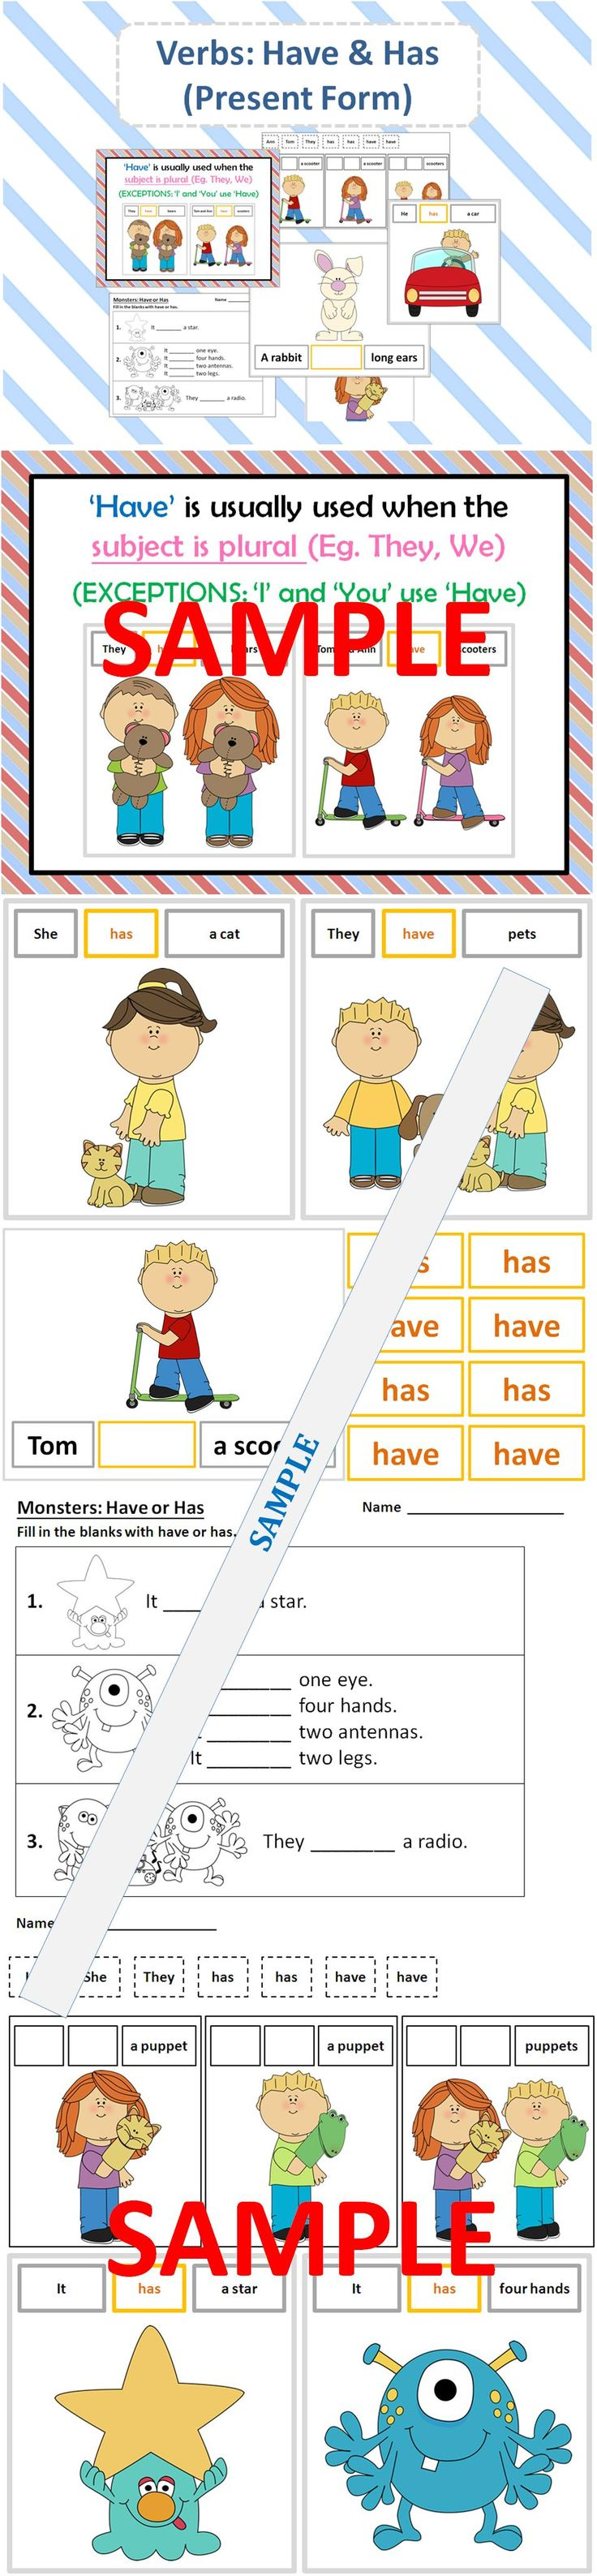 "Verbs Have and Has (Present Form).   This package is designed to teach the different forms of 'have' for the subject pronouns (ie. He, She, It, They), names (eg. Mary, Tom), objects (eg. Cookies, Jar) and animals (eg. Rabbit).   Students would understand how to use 'have' and 'has' and learn to form simple three-word sentences, such as ""They have bears"" and ""It has four hands""."